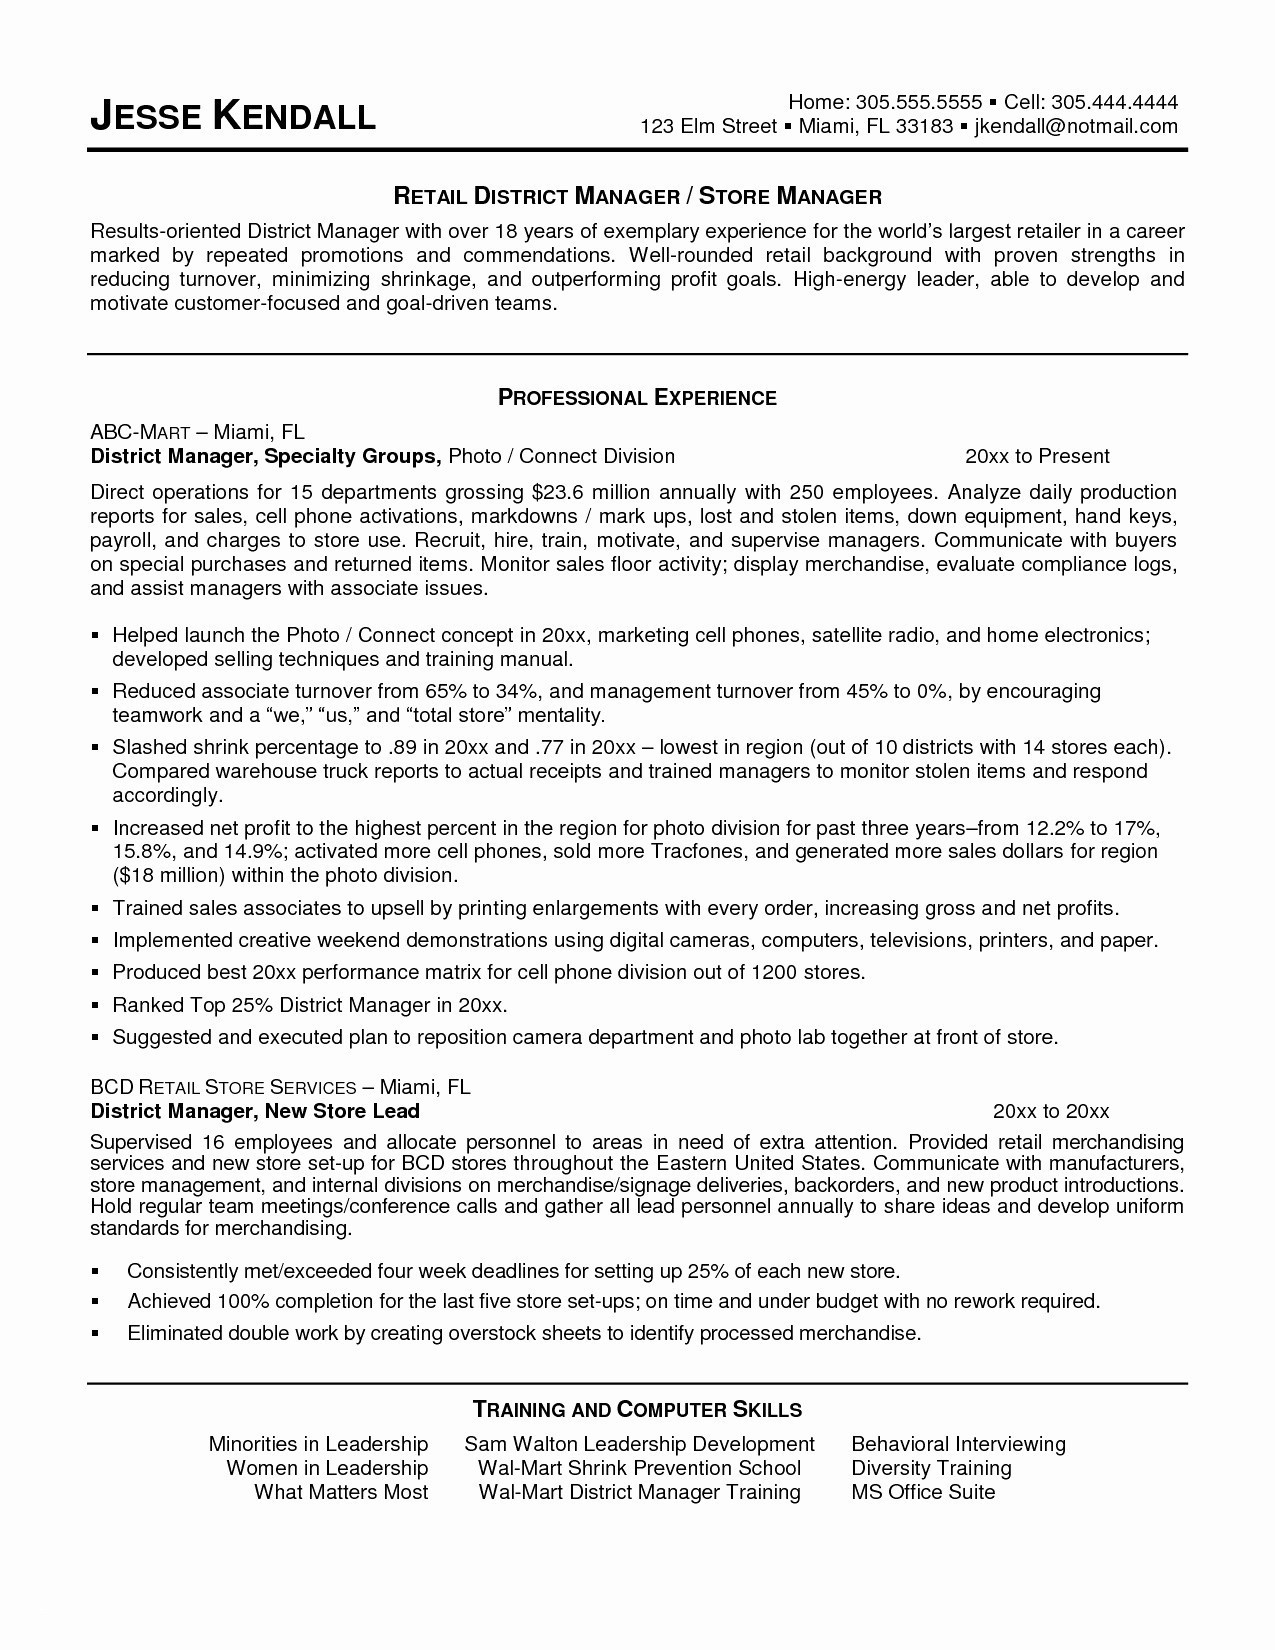 Lifeguard Responsibilities Resume - 15 Resume and Cv